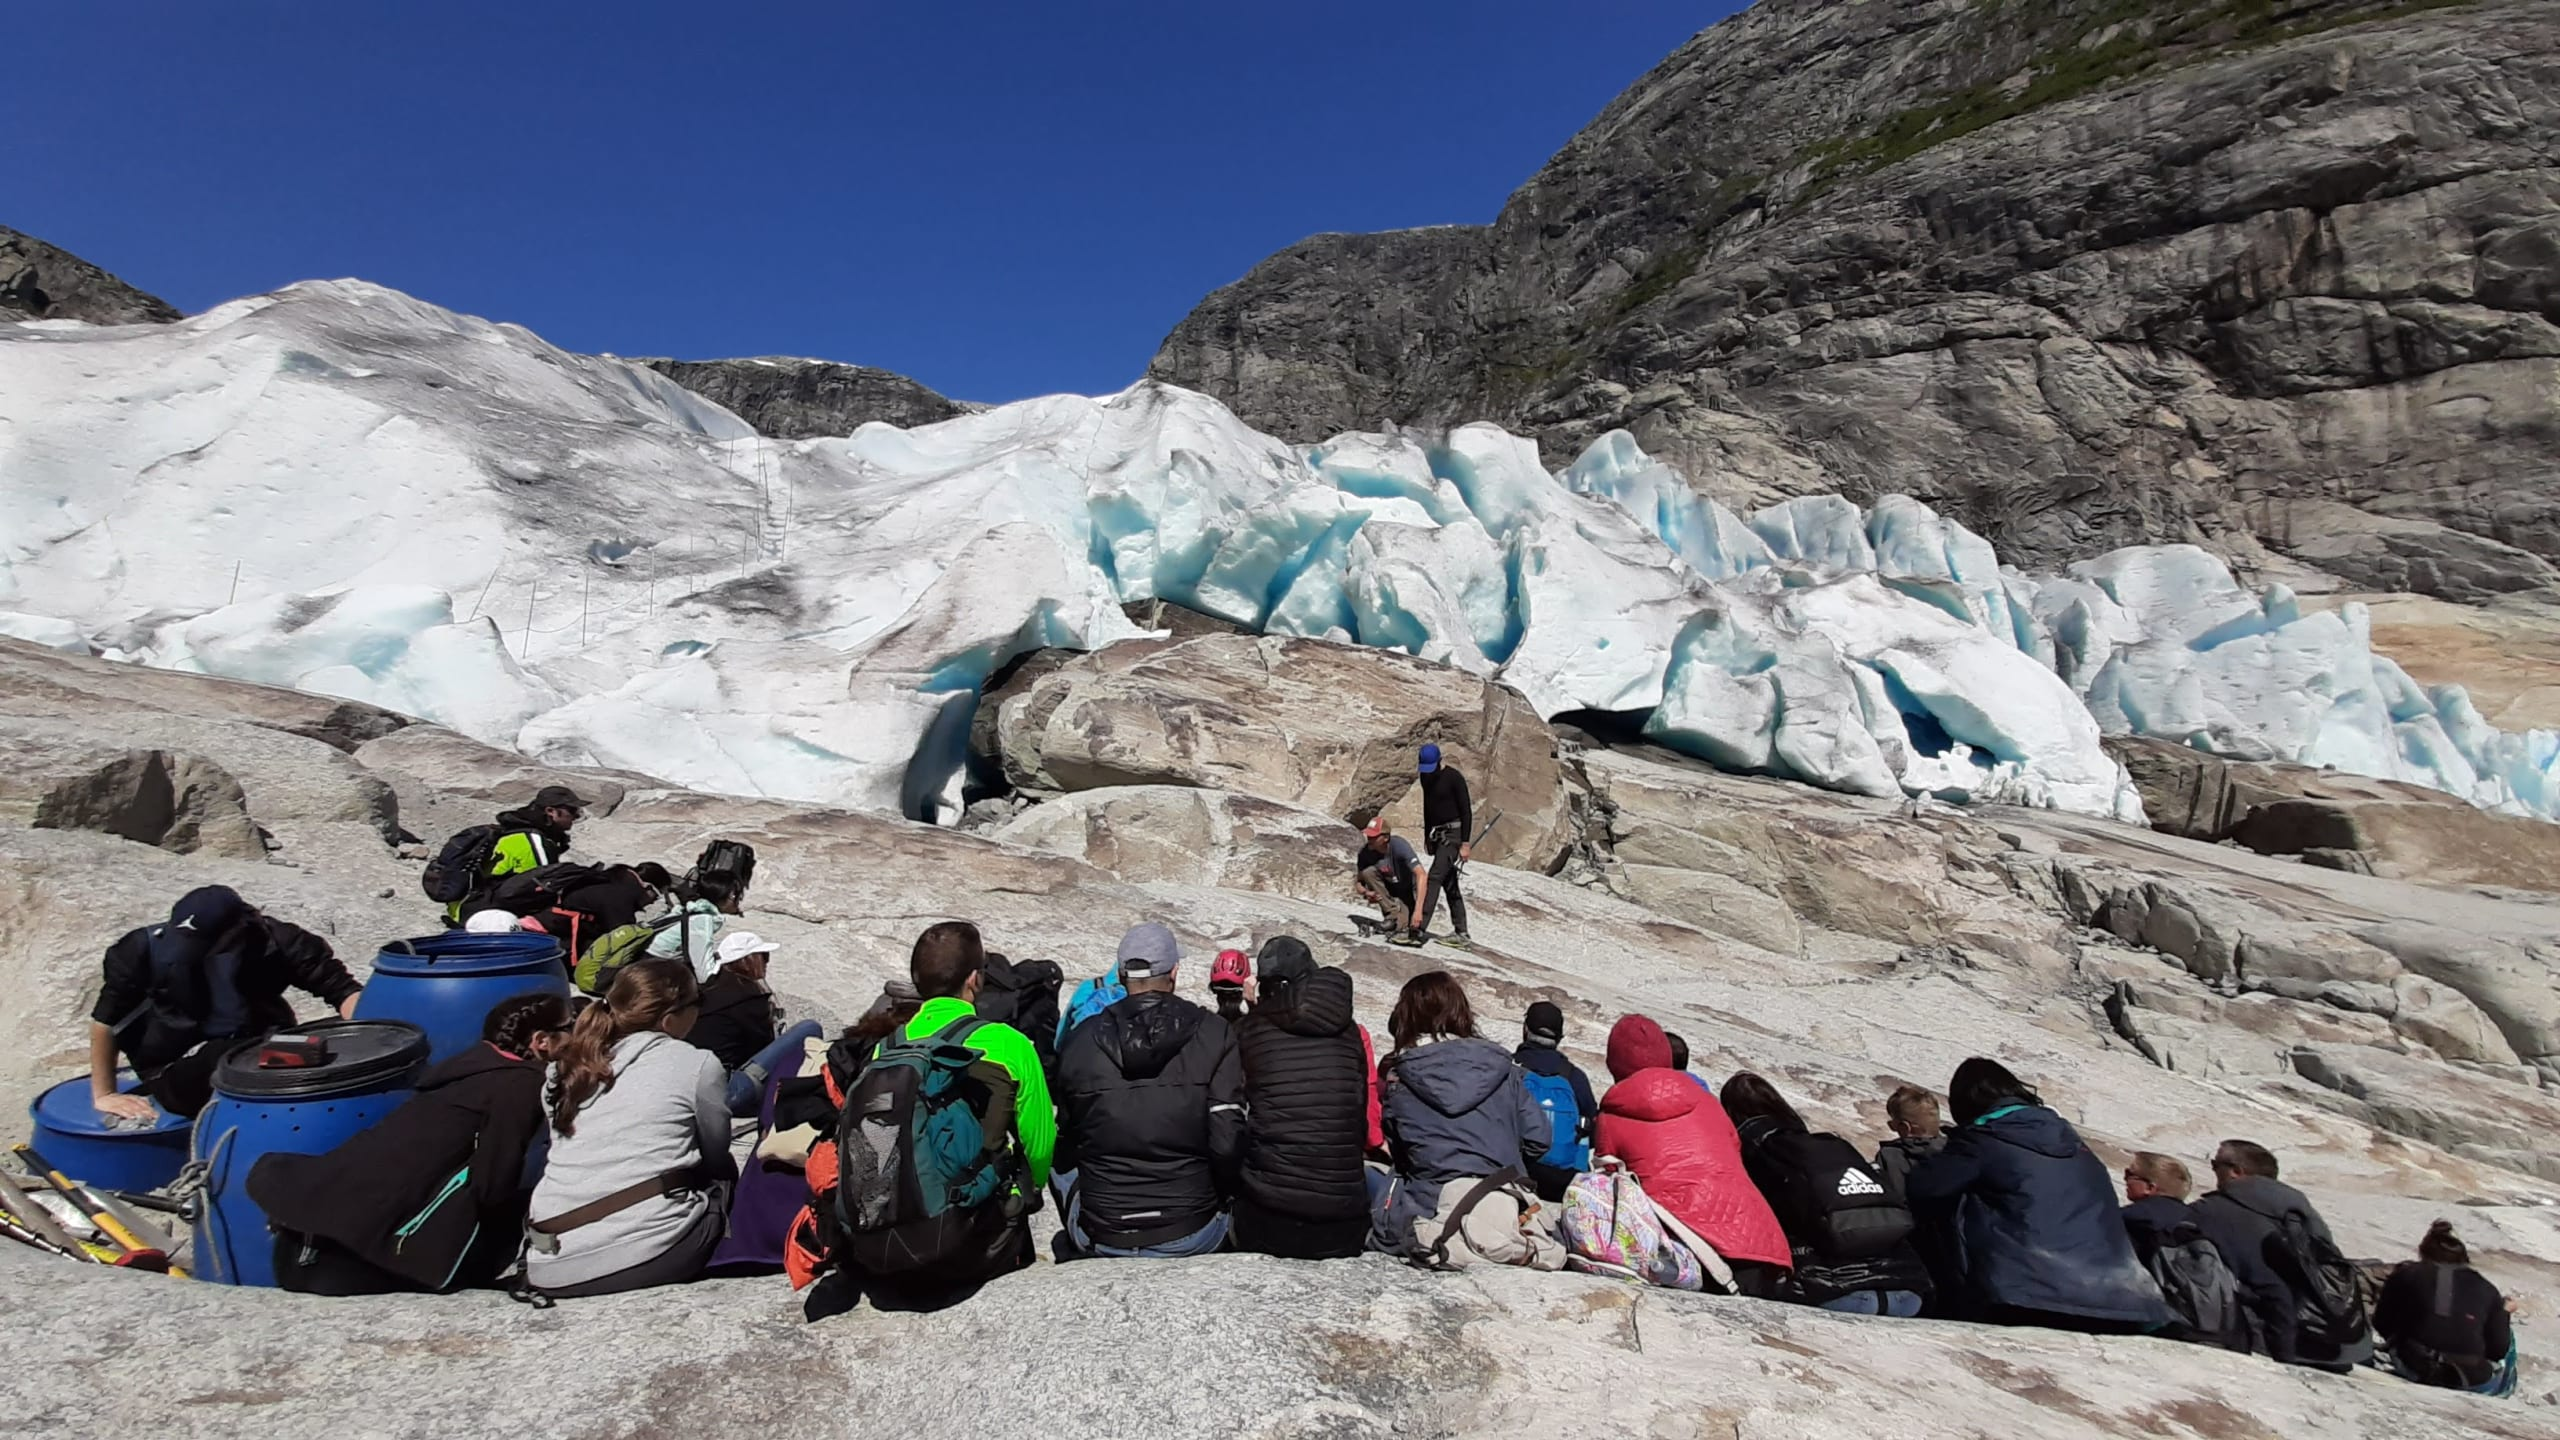 Lunch break at Nigardsbreen